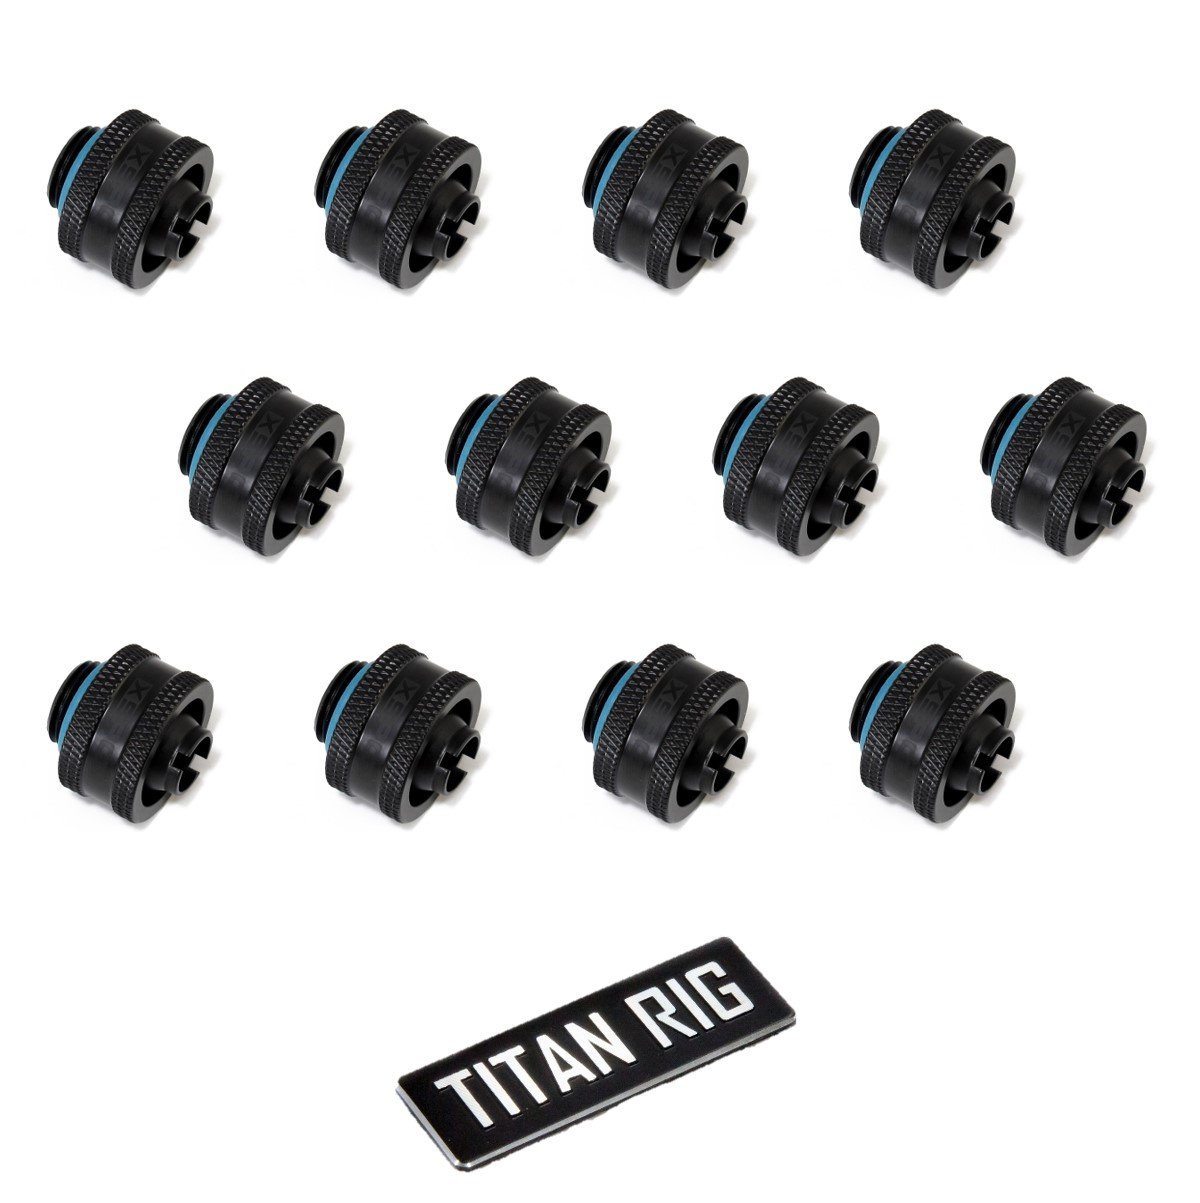 Chrome 12-Pack 5//8 OD Compression Fitting V2 for Soft Tubing XSPC G1//4 to 3//8 ID